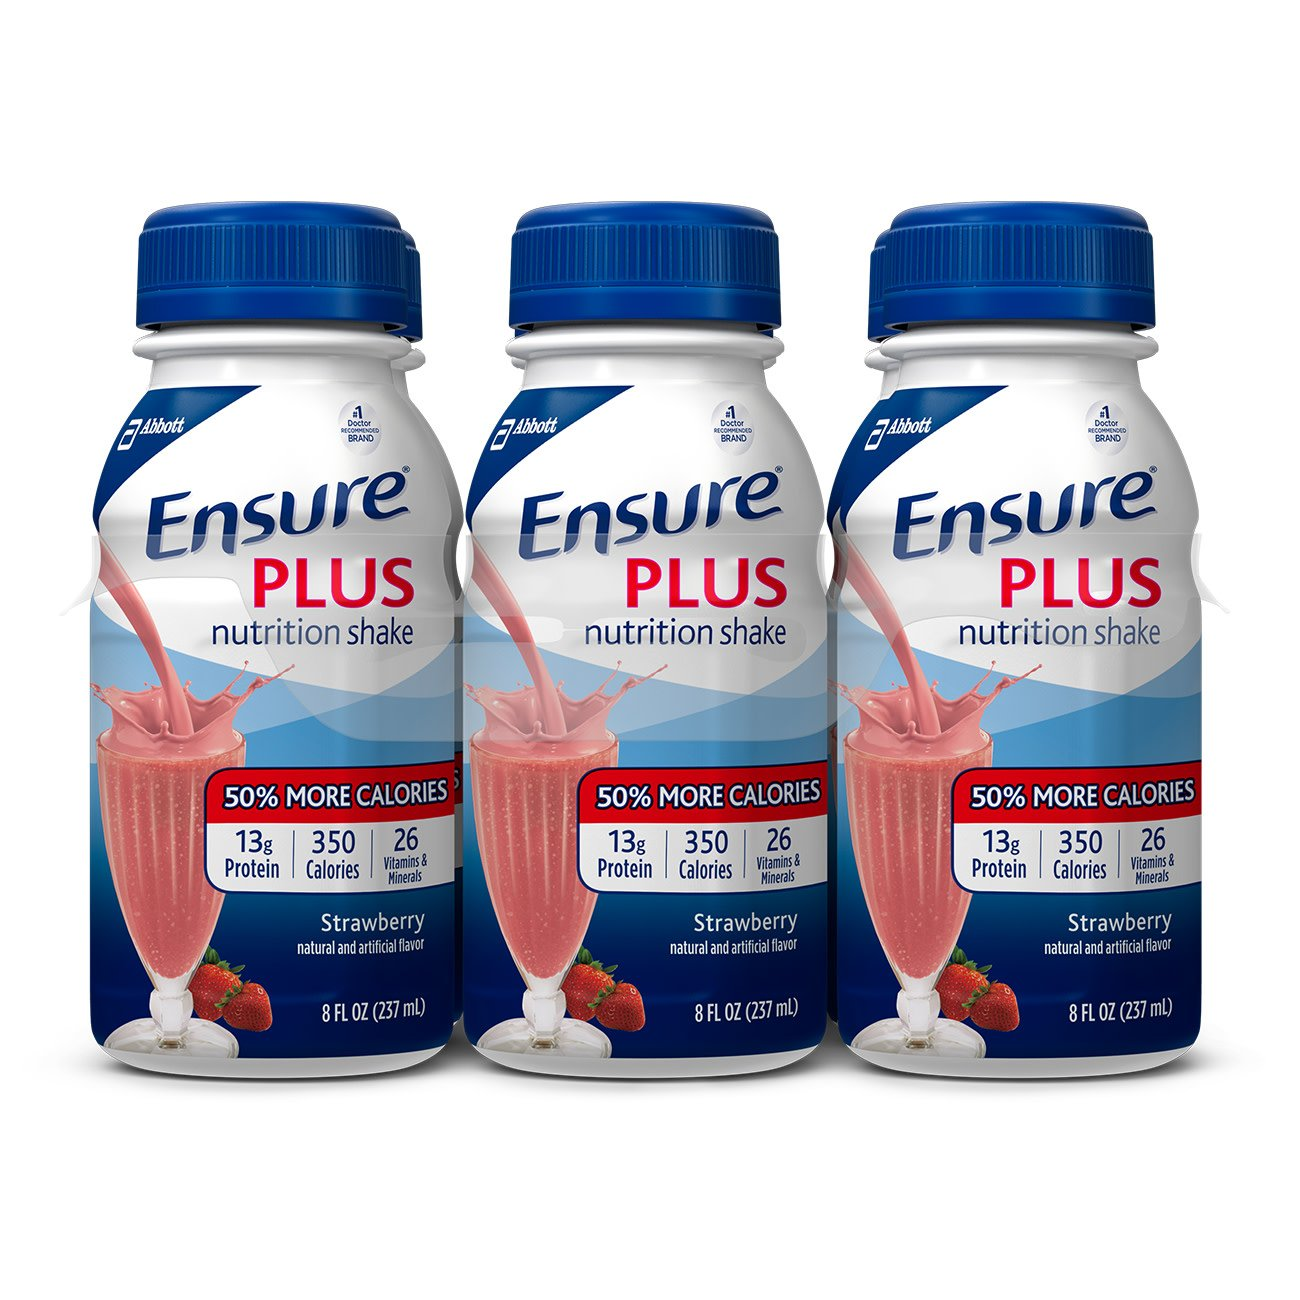 Ensure Plus Strawberry Flavor 8 oz. Bottle Ready to Use, 57269 - Case of 24